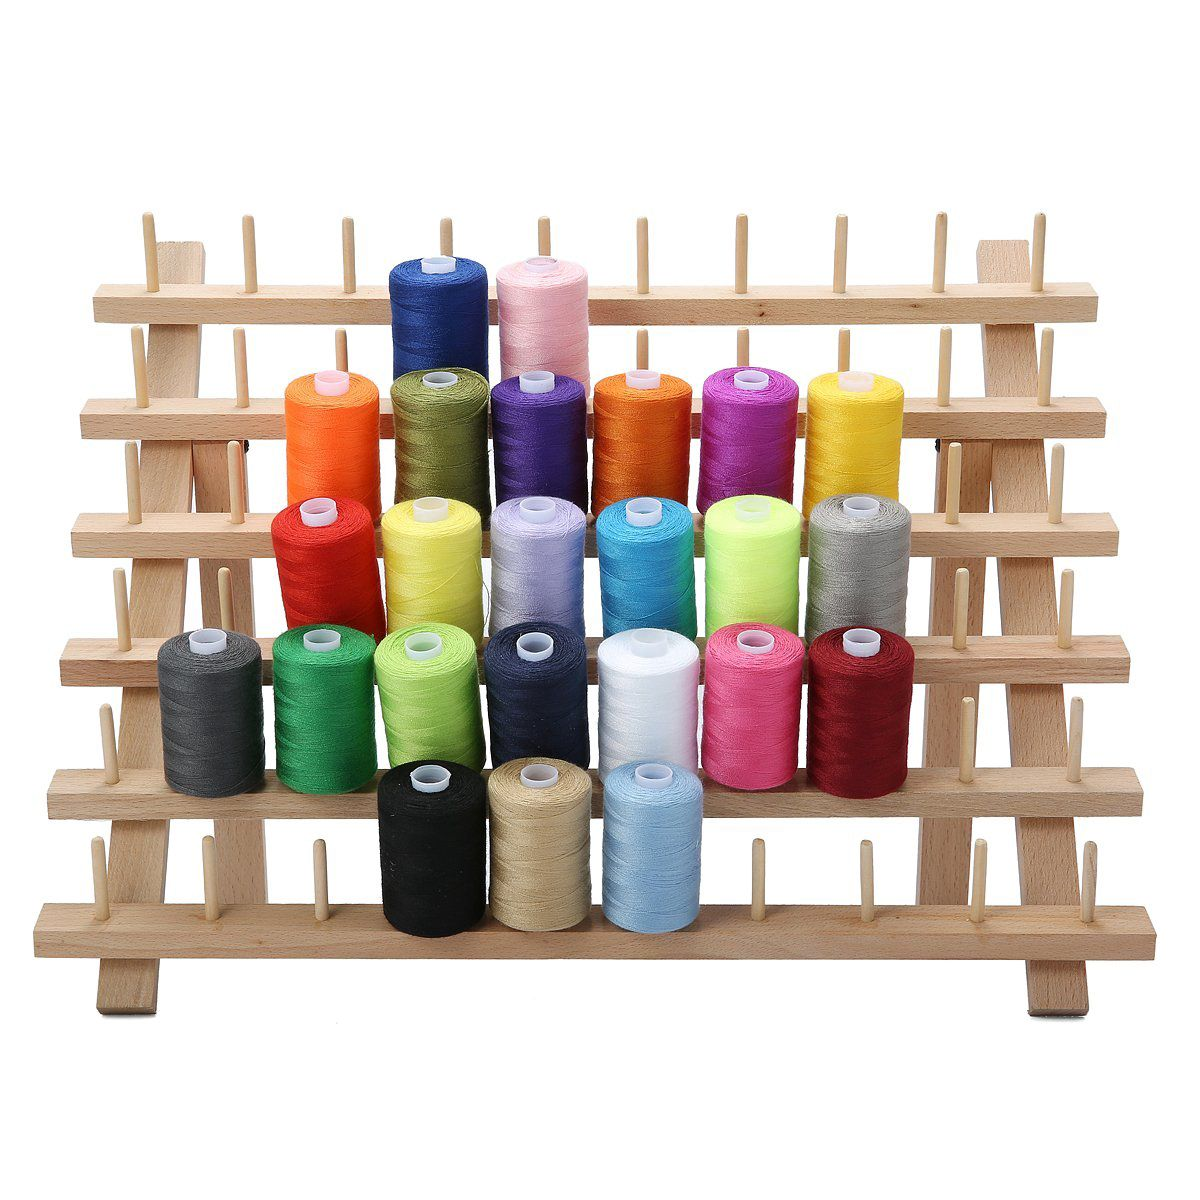 Hot Sale 60 Spool Wooden Thread Rack and Organizer for Sewing Quilting Embroidery in Storage Holders Racks from Home Garden